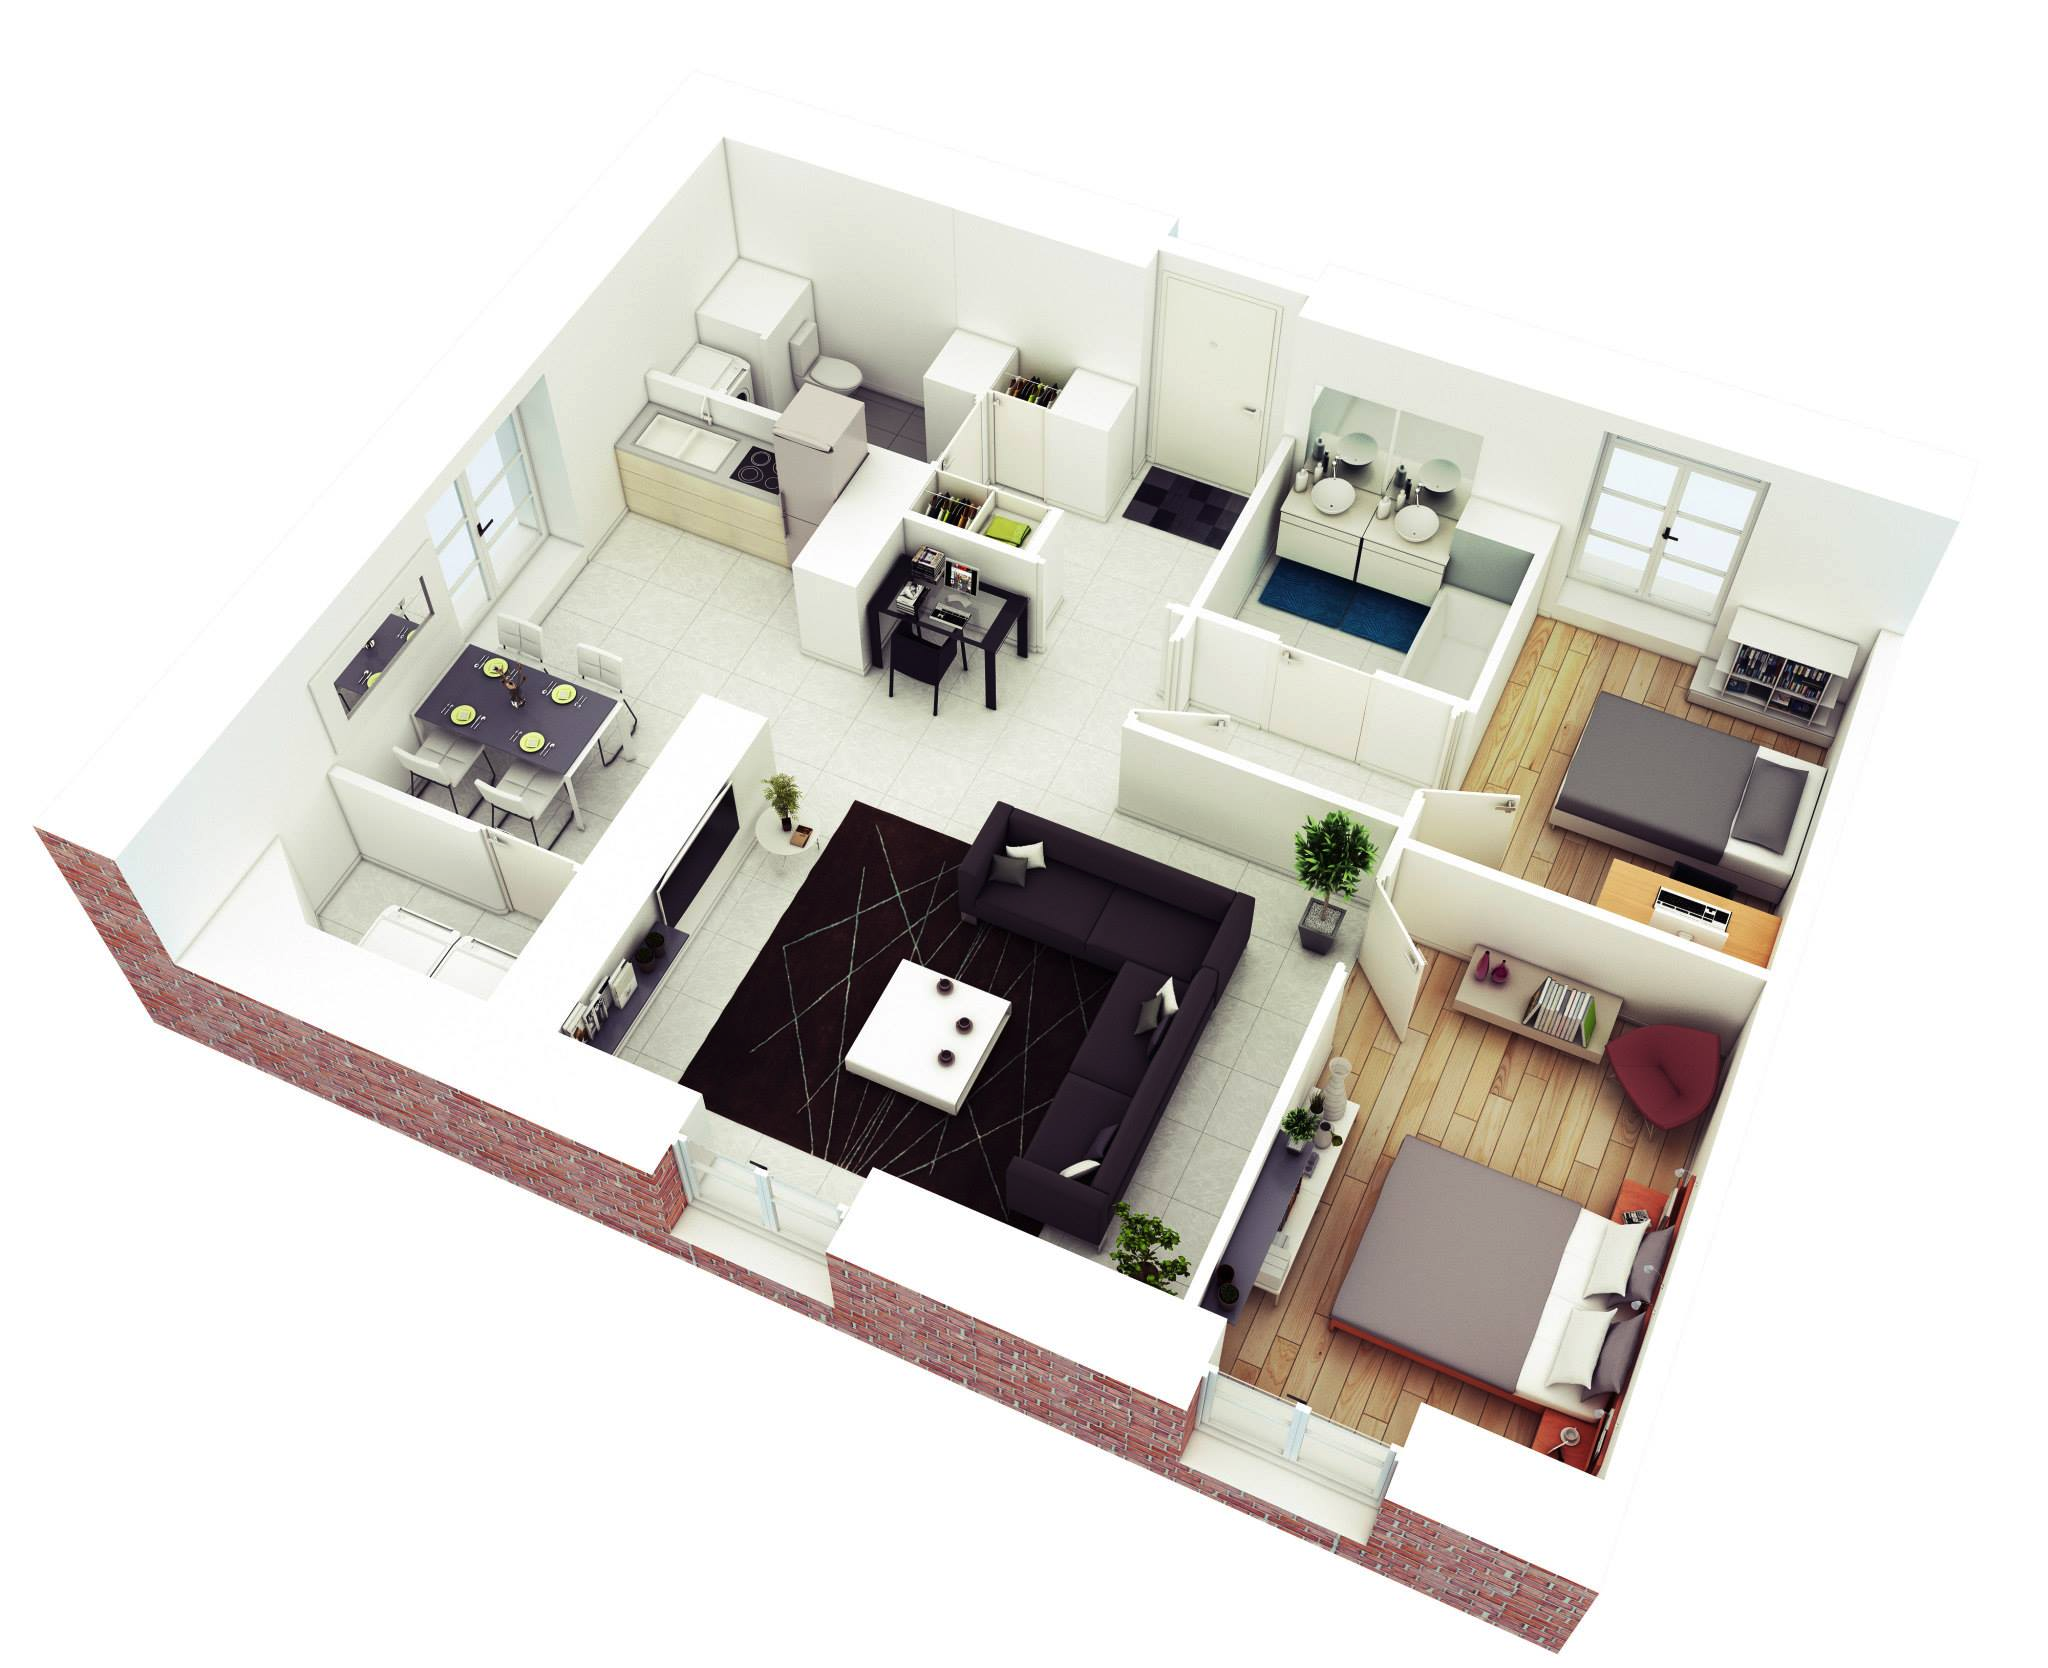 25 more 2 bedroom 3d floor plans - Architectural plan of two bedroom flat with dining room ...